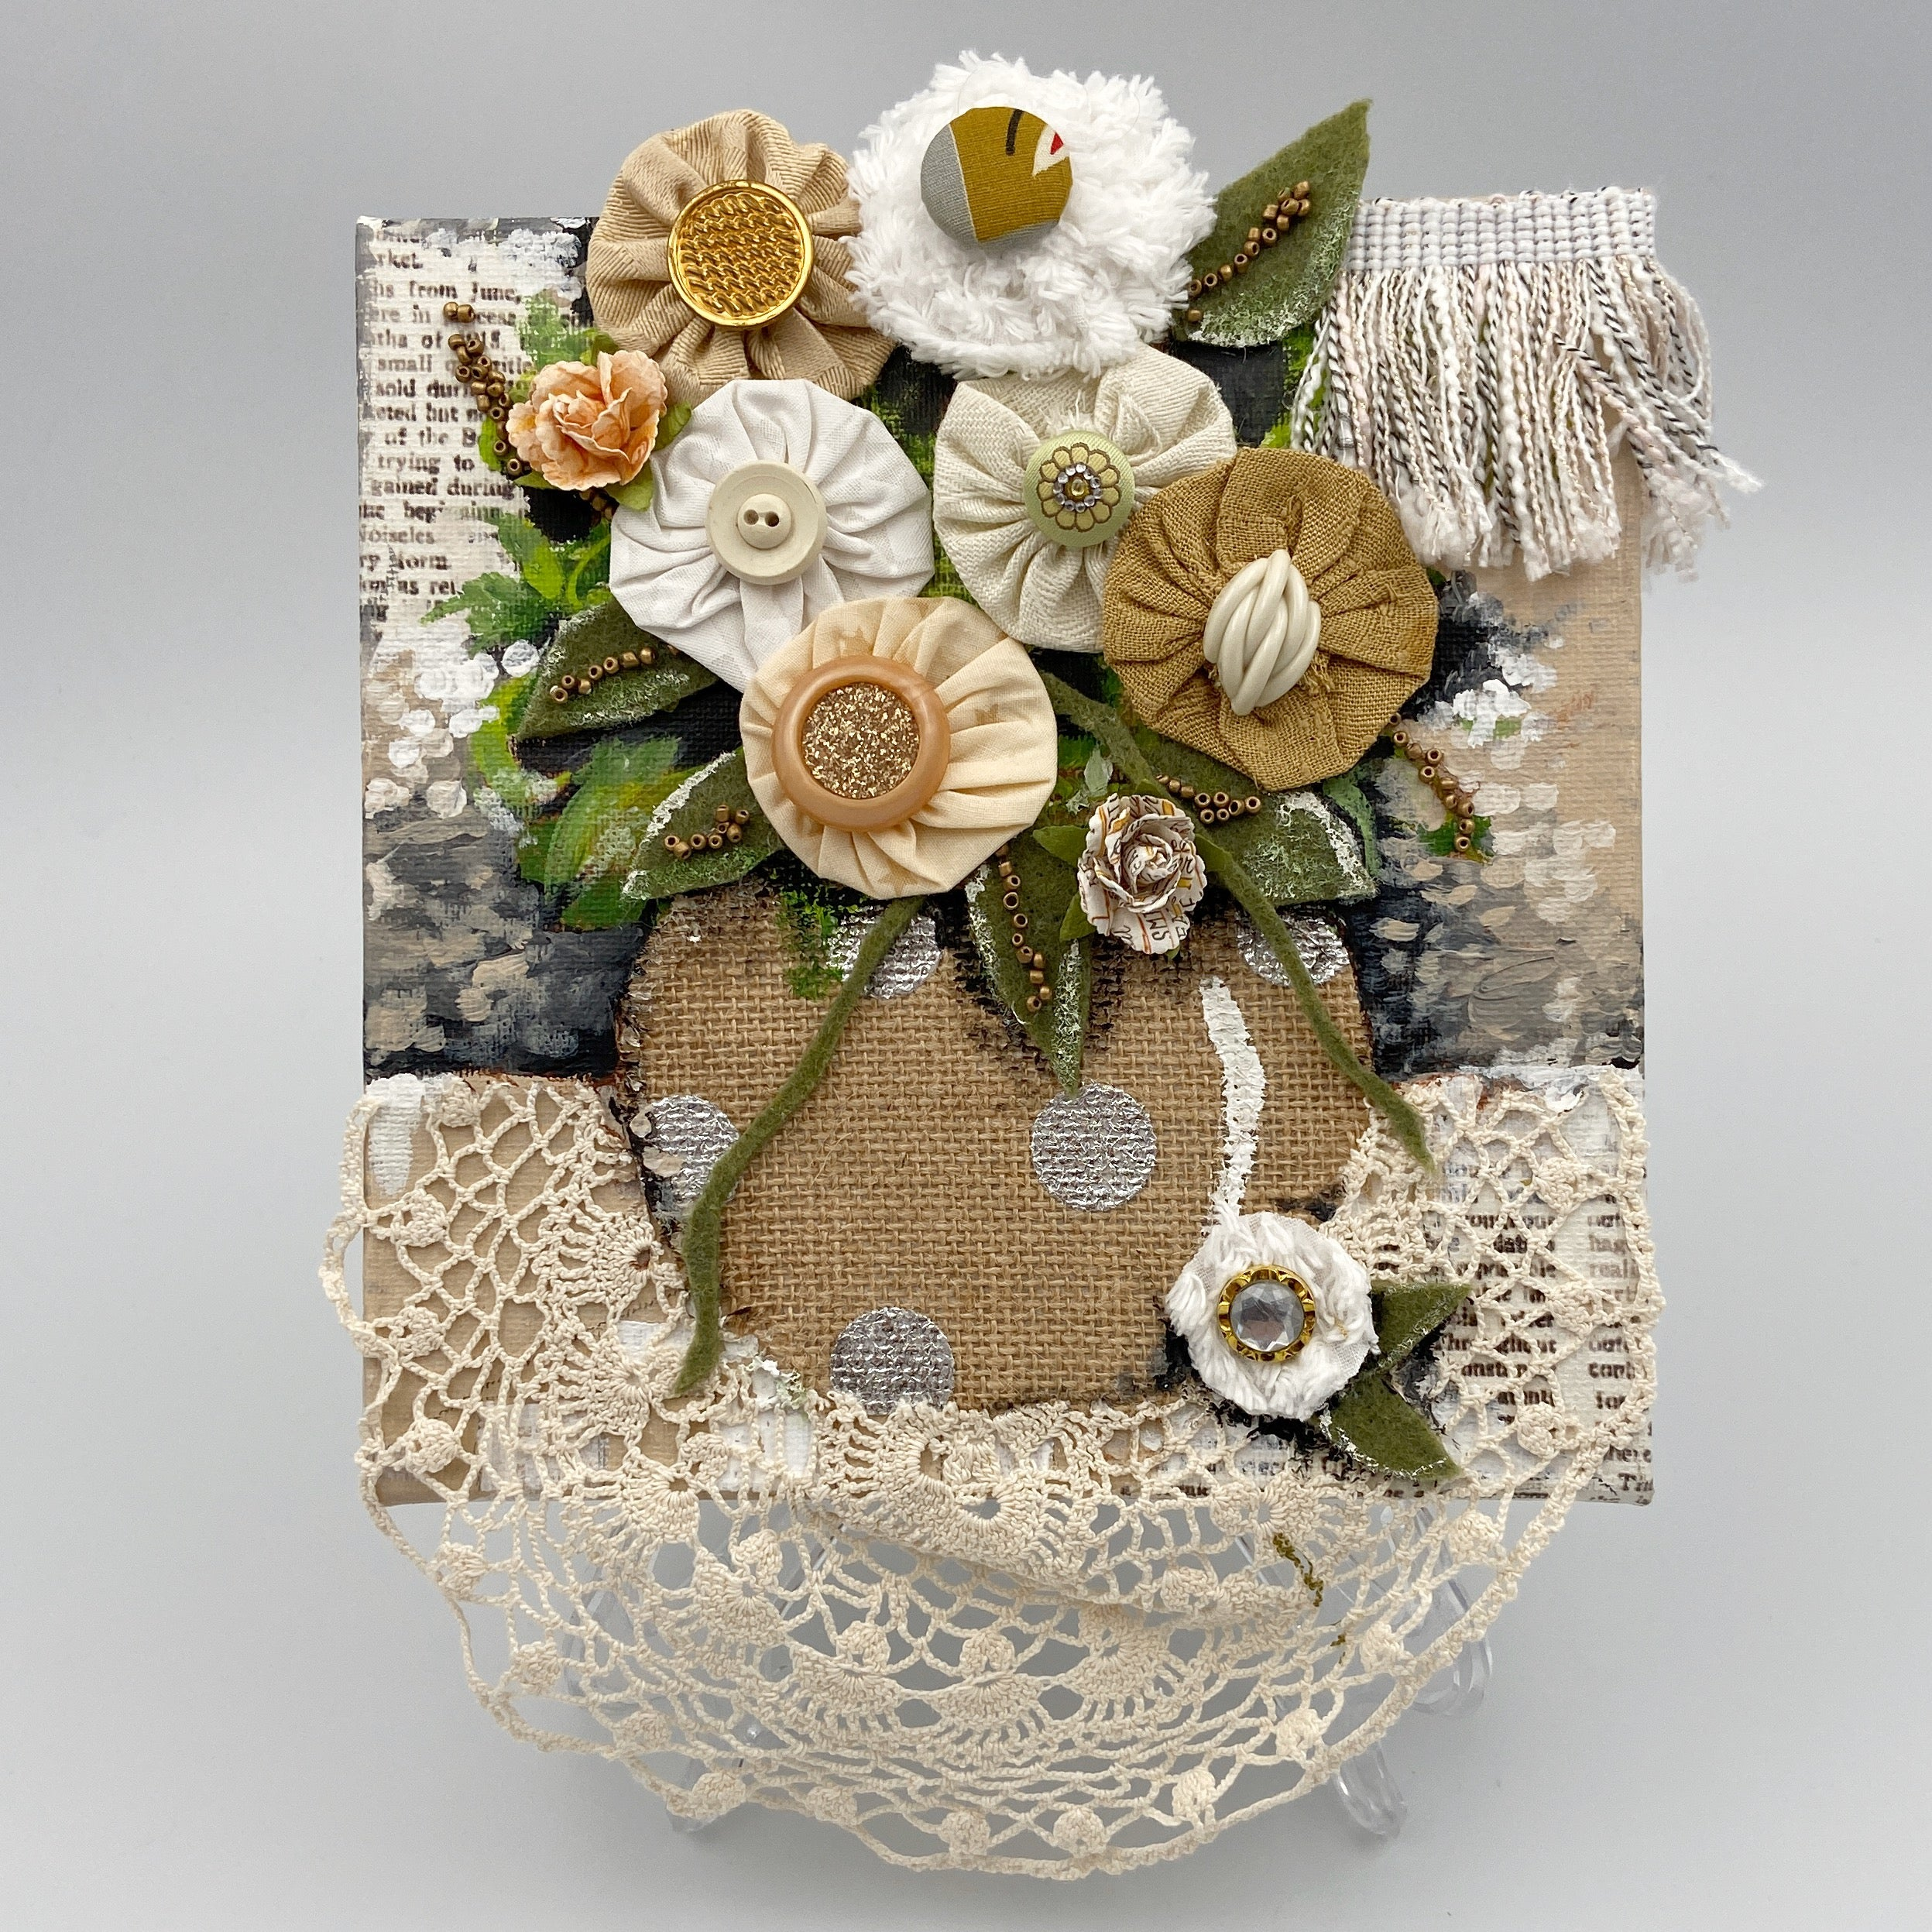 Whimsical Beige Florals and Doily Collage